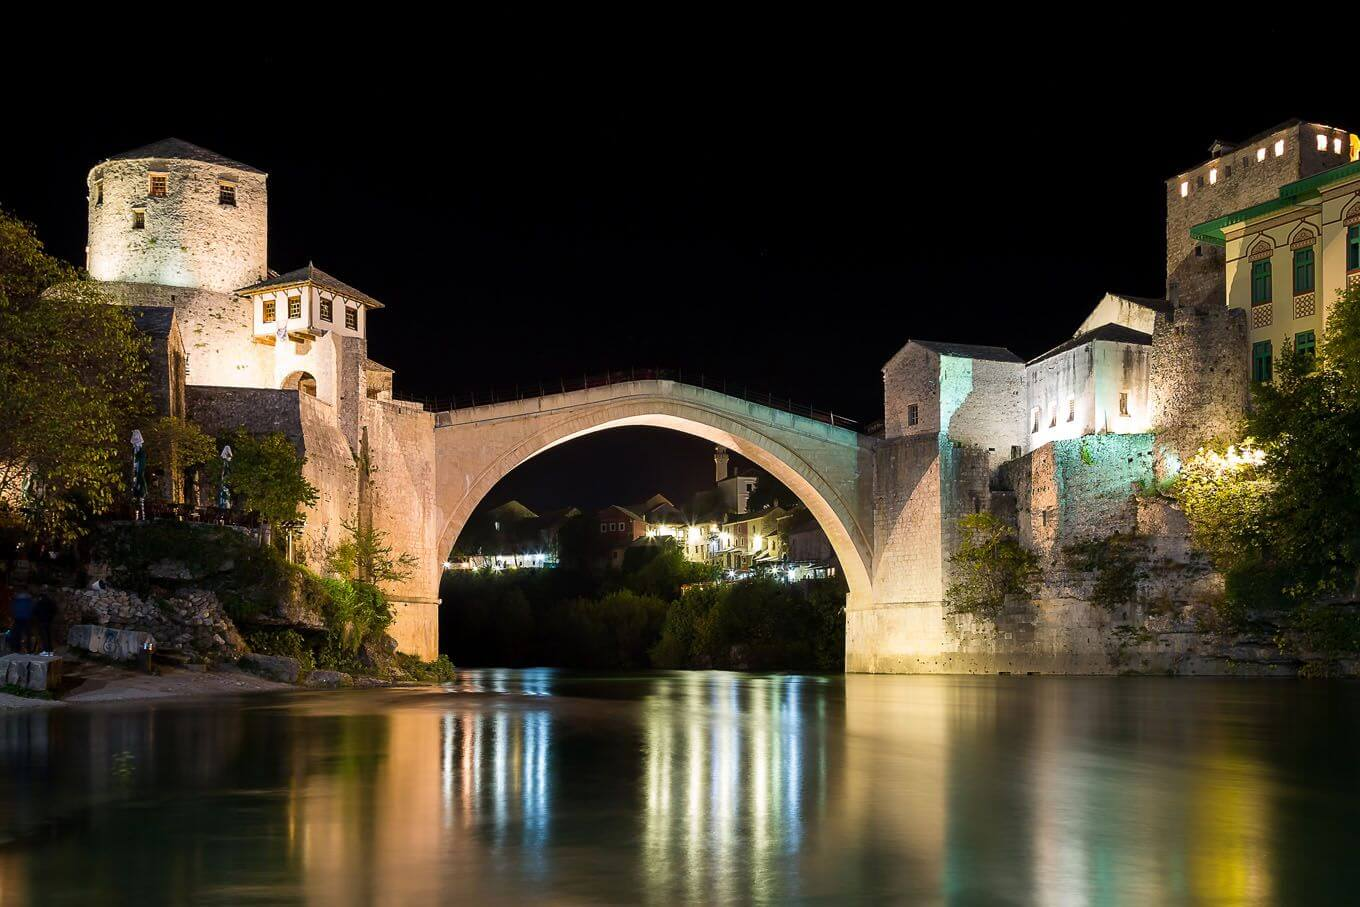 Photograph of the famous bridge Stari Most in Mostar